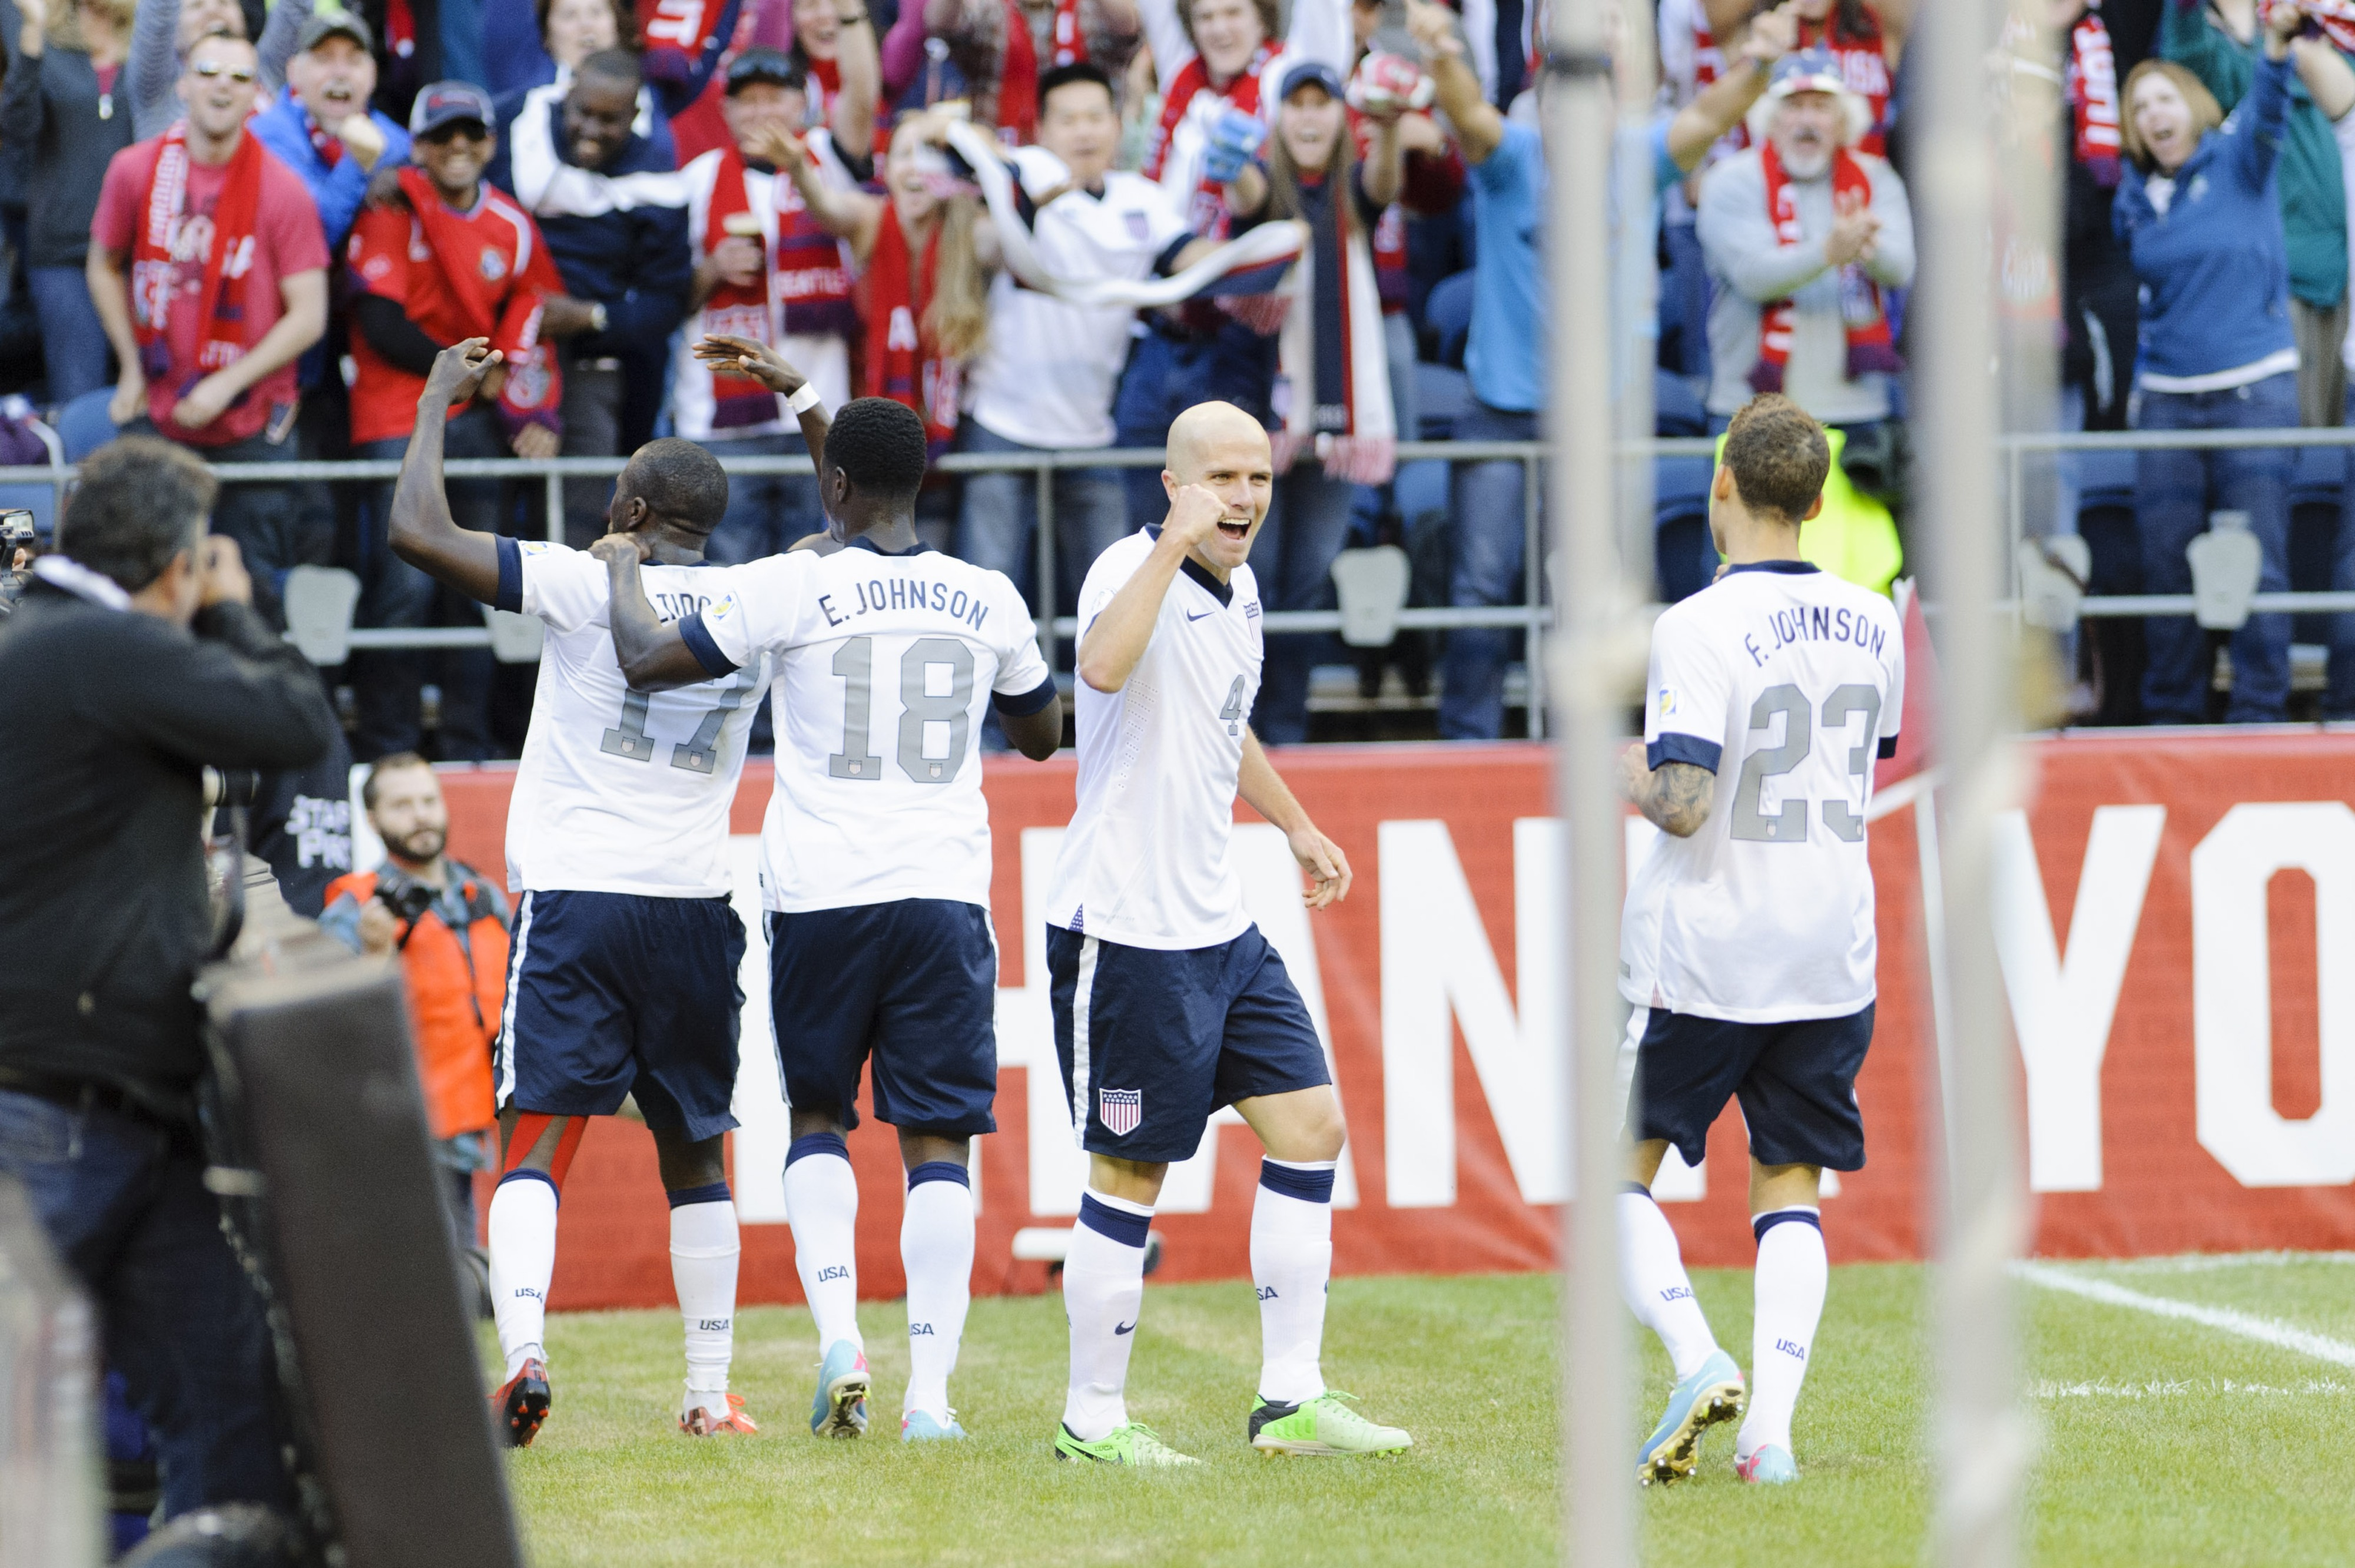 USA vs. Panama: USMNT dominates in front of raucous Seattle crowd